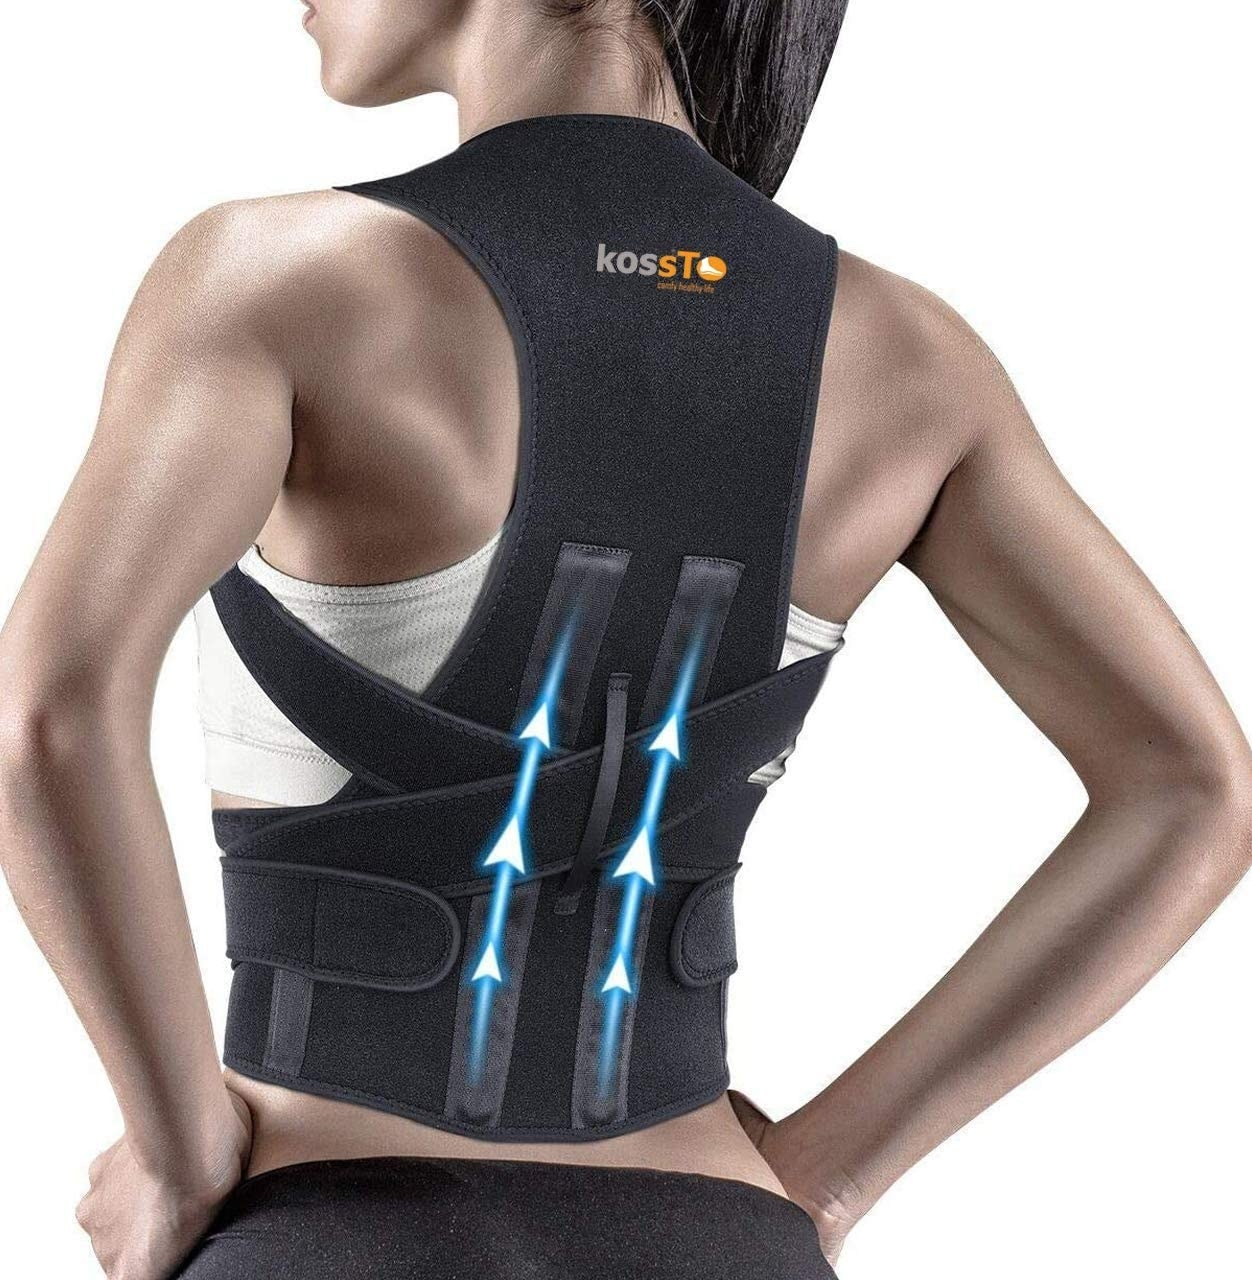 A woman wearing the posture corrector